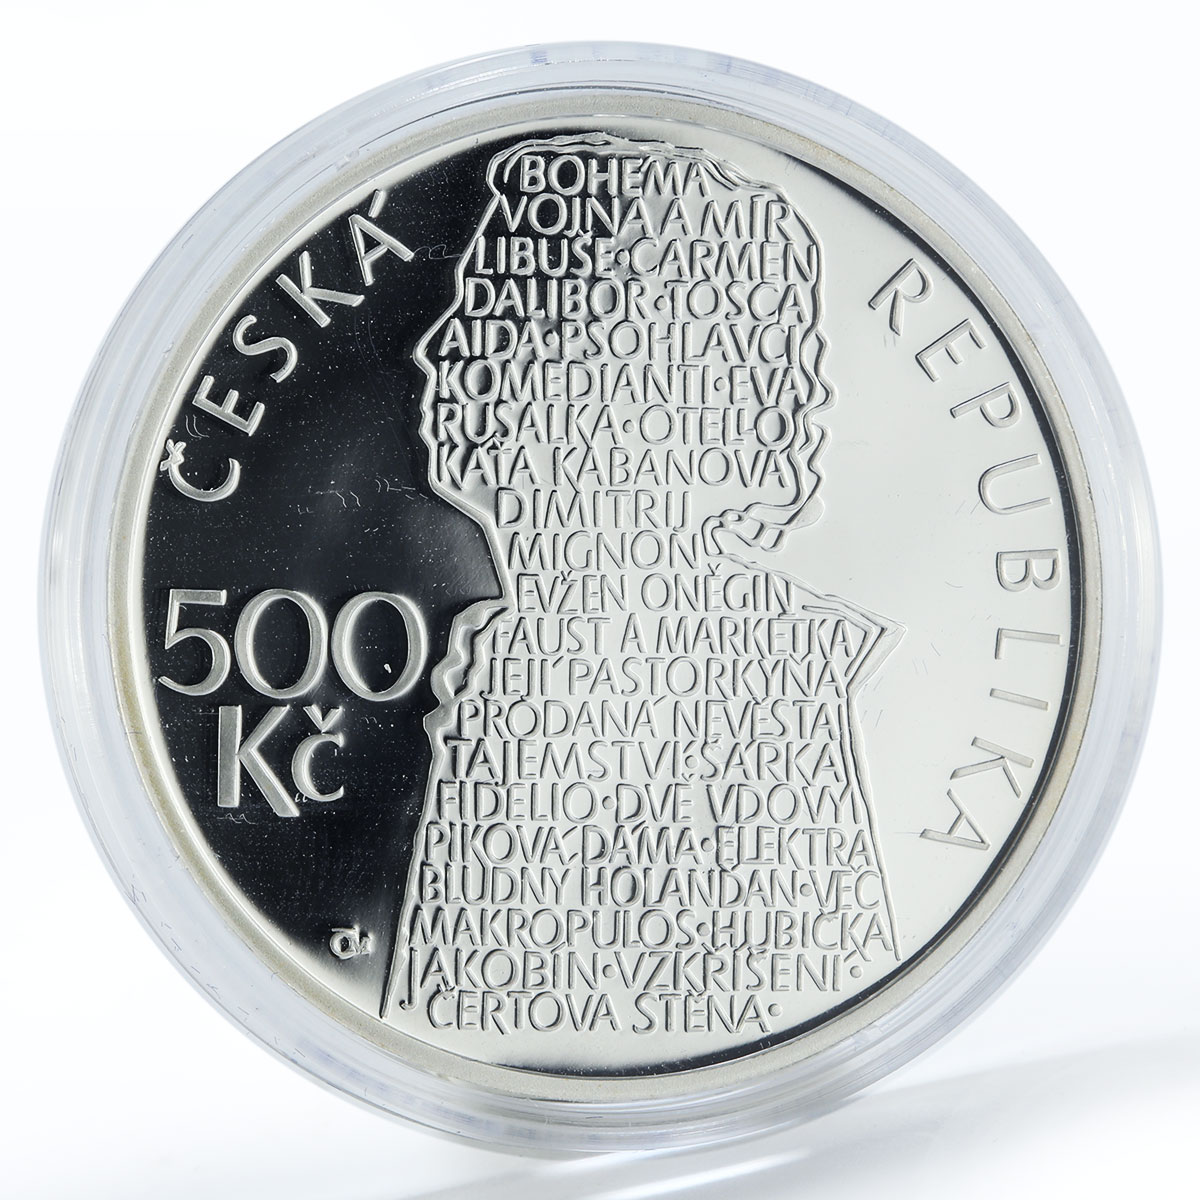 Czech Republic 500 korun 100th Anniversary birth Beno Blachut silver coin 2013